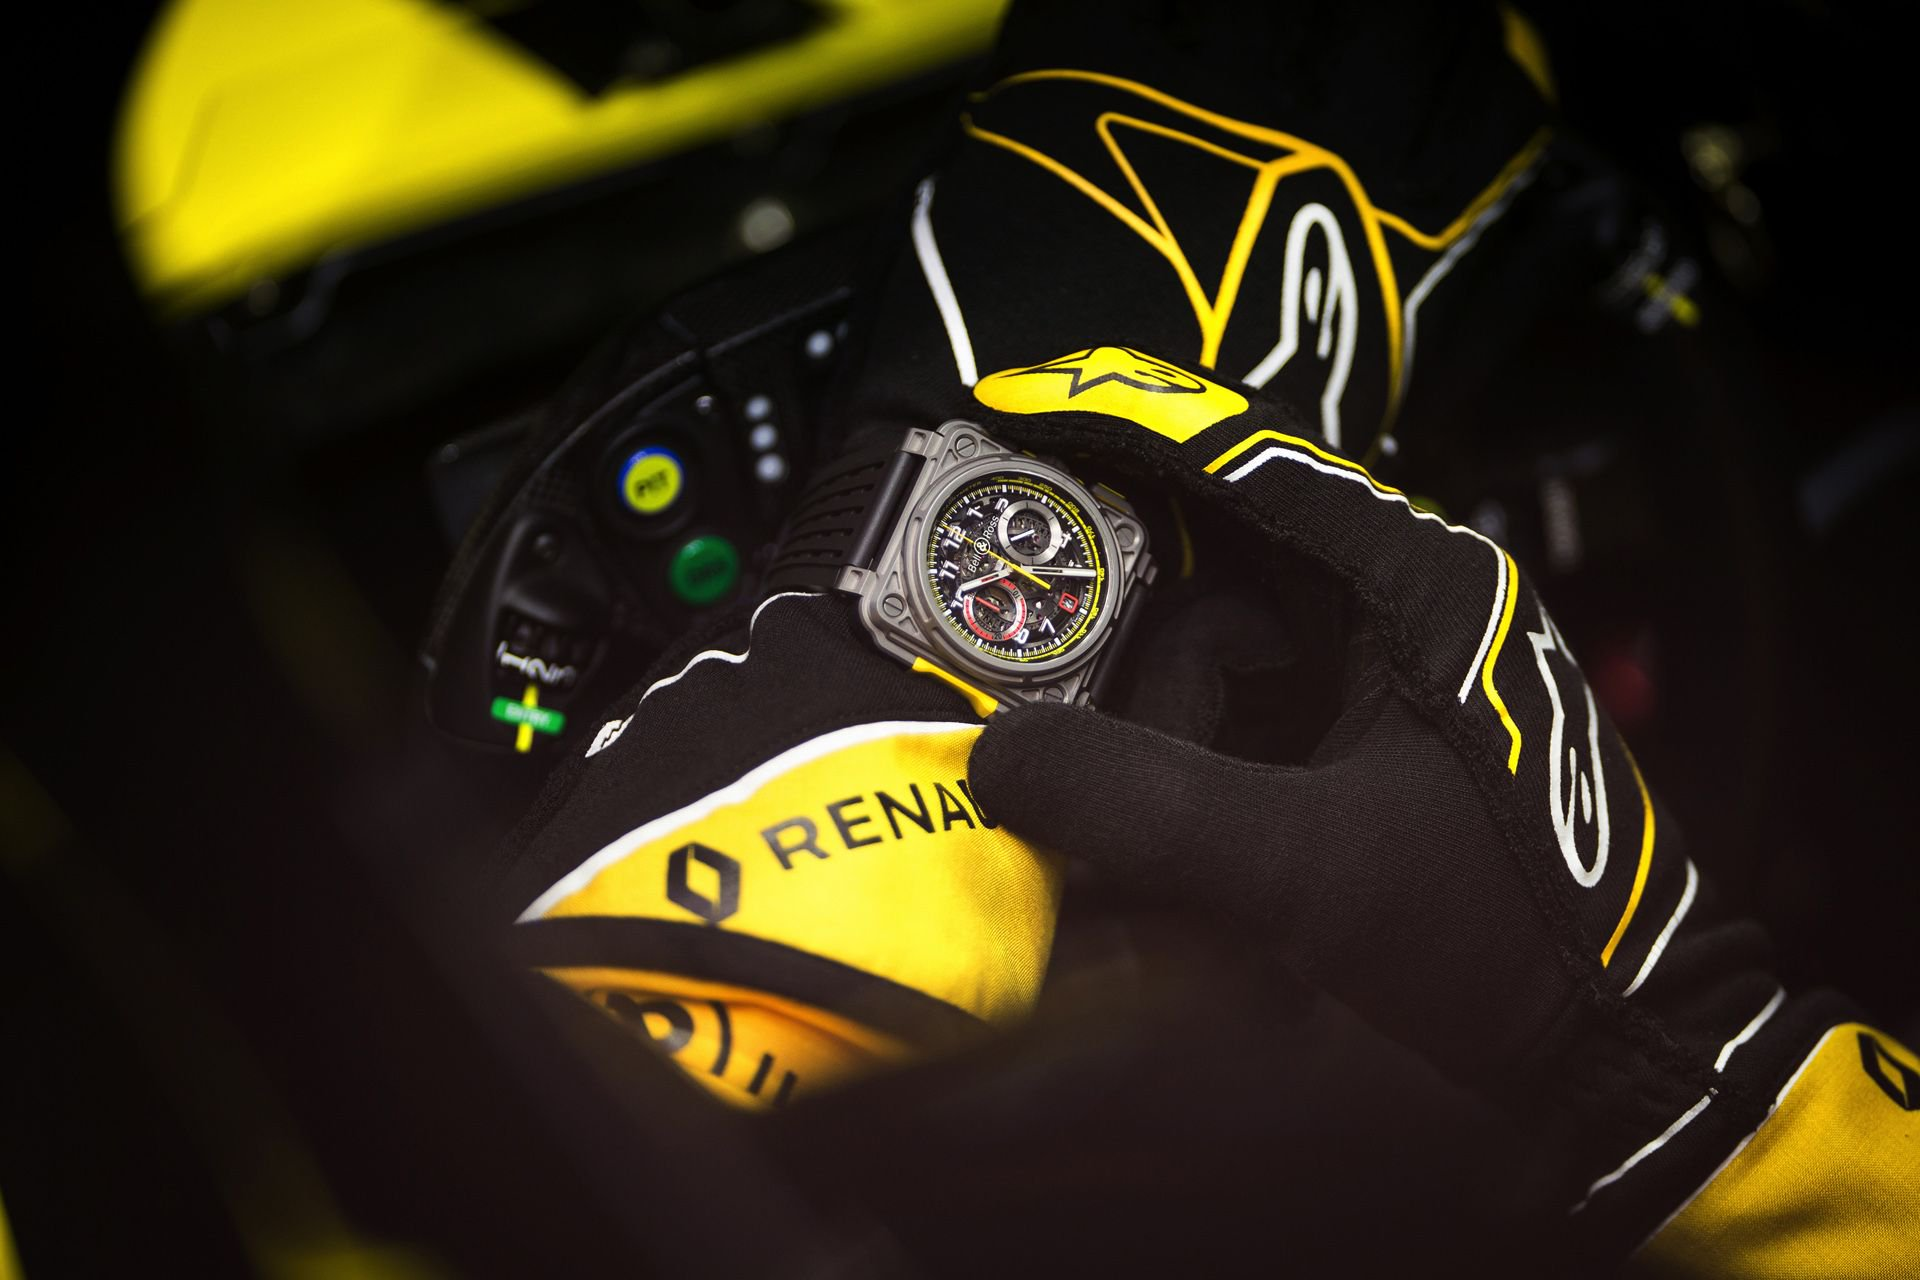 bell-ross-renault-rs18-watch-13